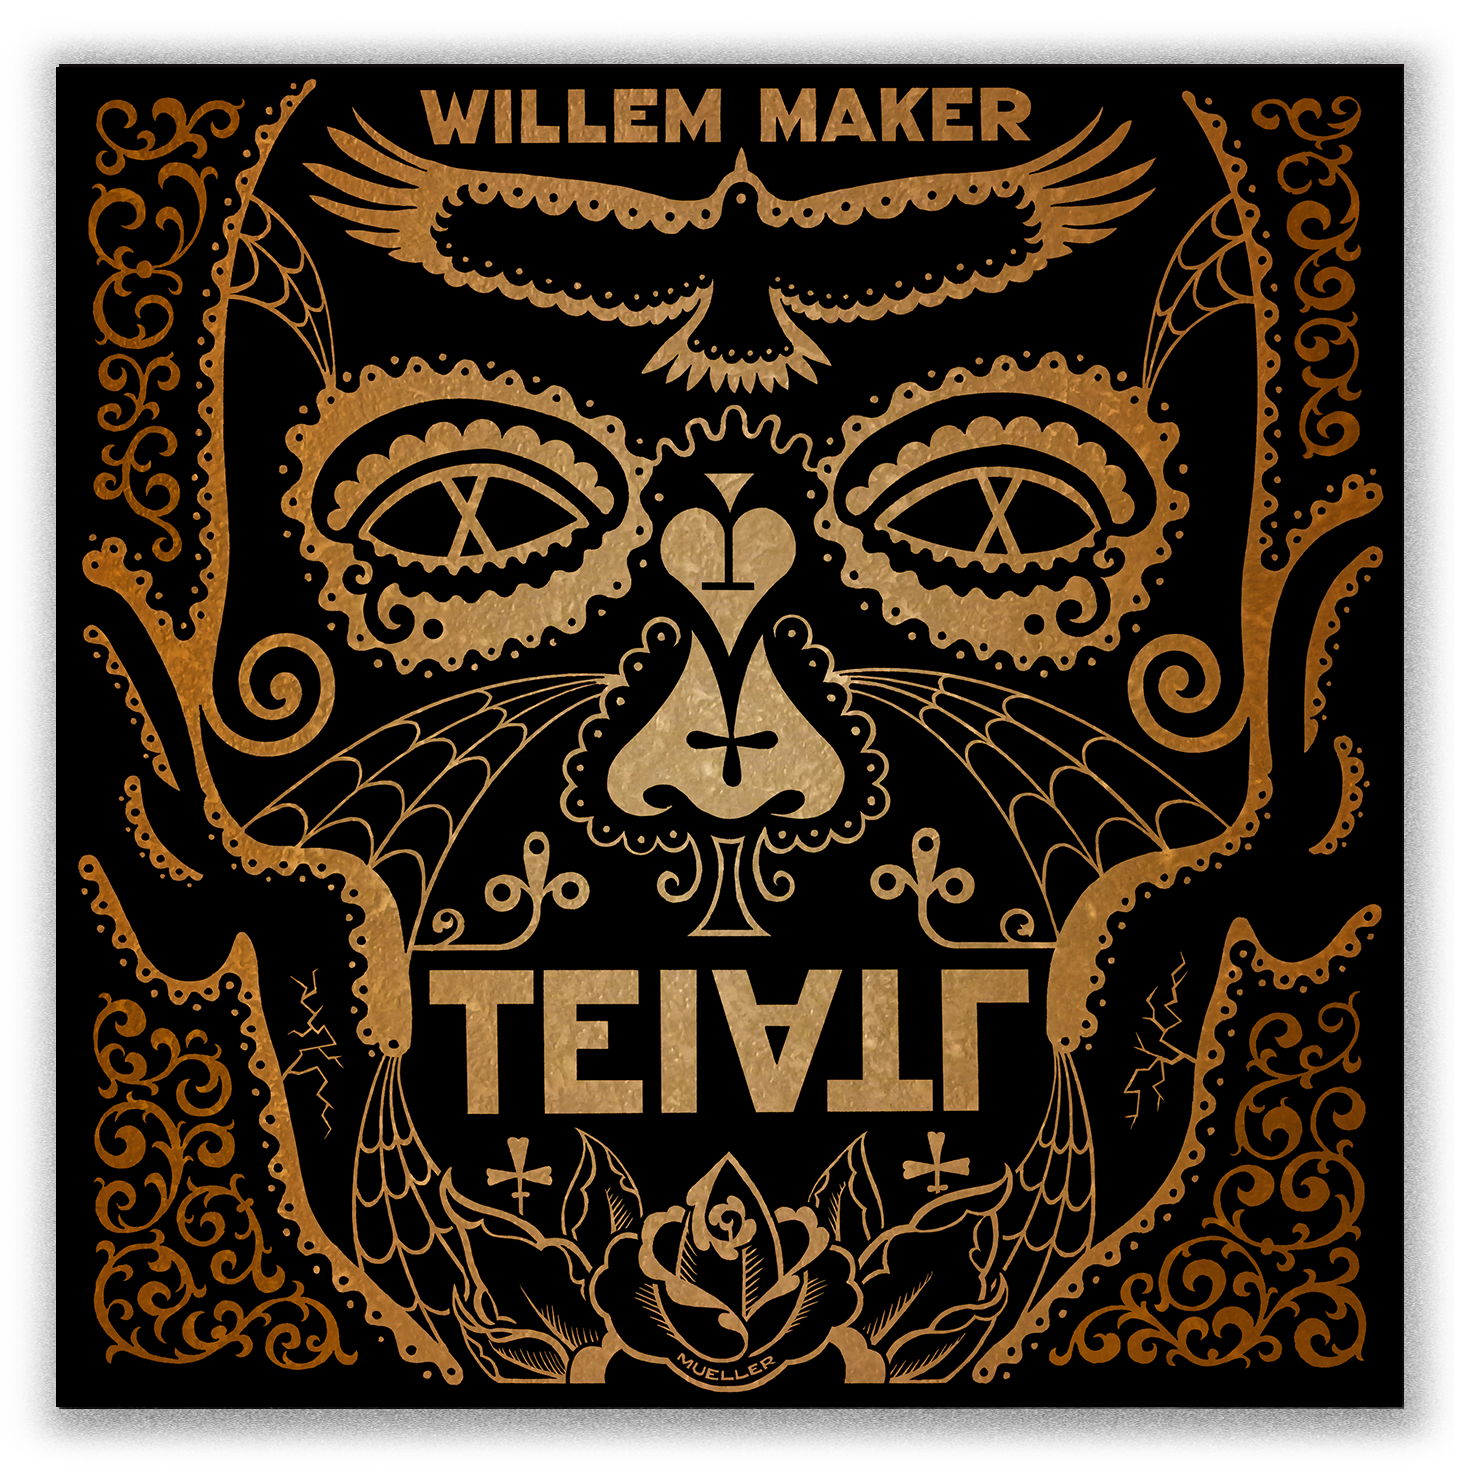 Willem Maker – TEIATL artwork by Christoph Mueller